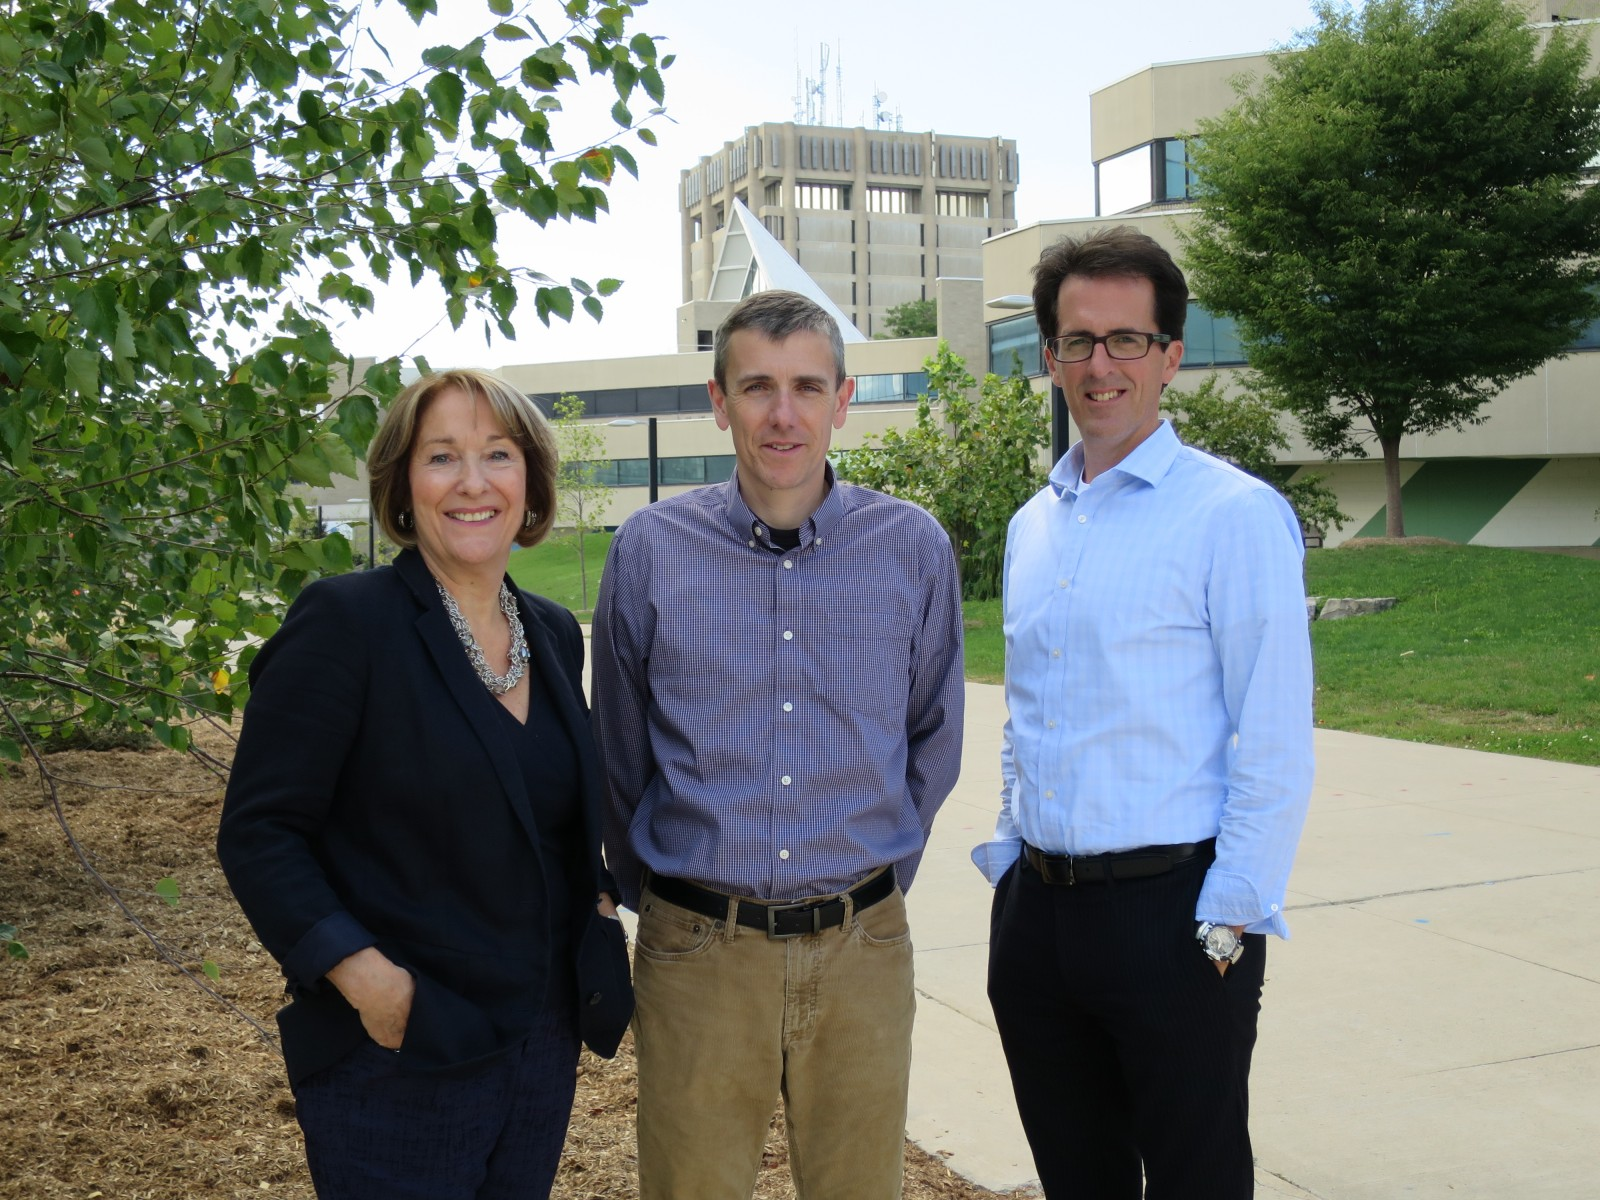 The 2015 MNK Award winners, from left, Nancy Francis and Thad Harroun, winners of the Graduate Mentorship Awards, and John McNamara, winner of the Marilyn Rose Leadership Award. The deadline for 2016 nominations is Thursday, March 10.